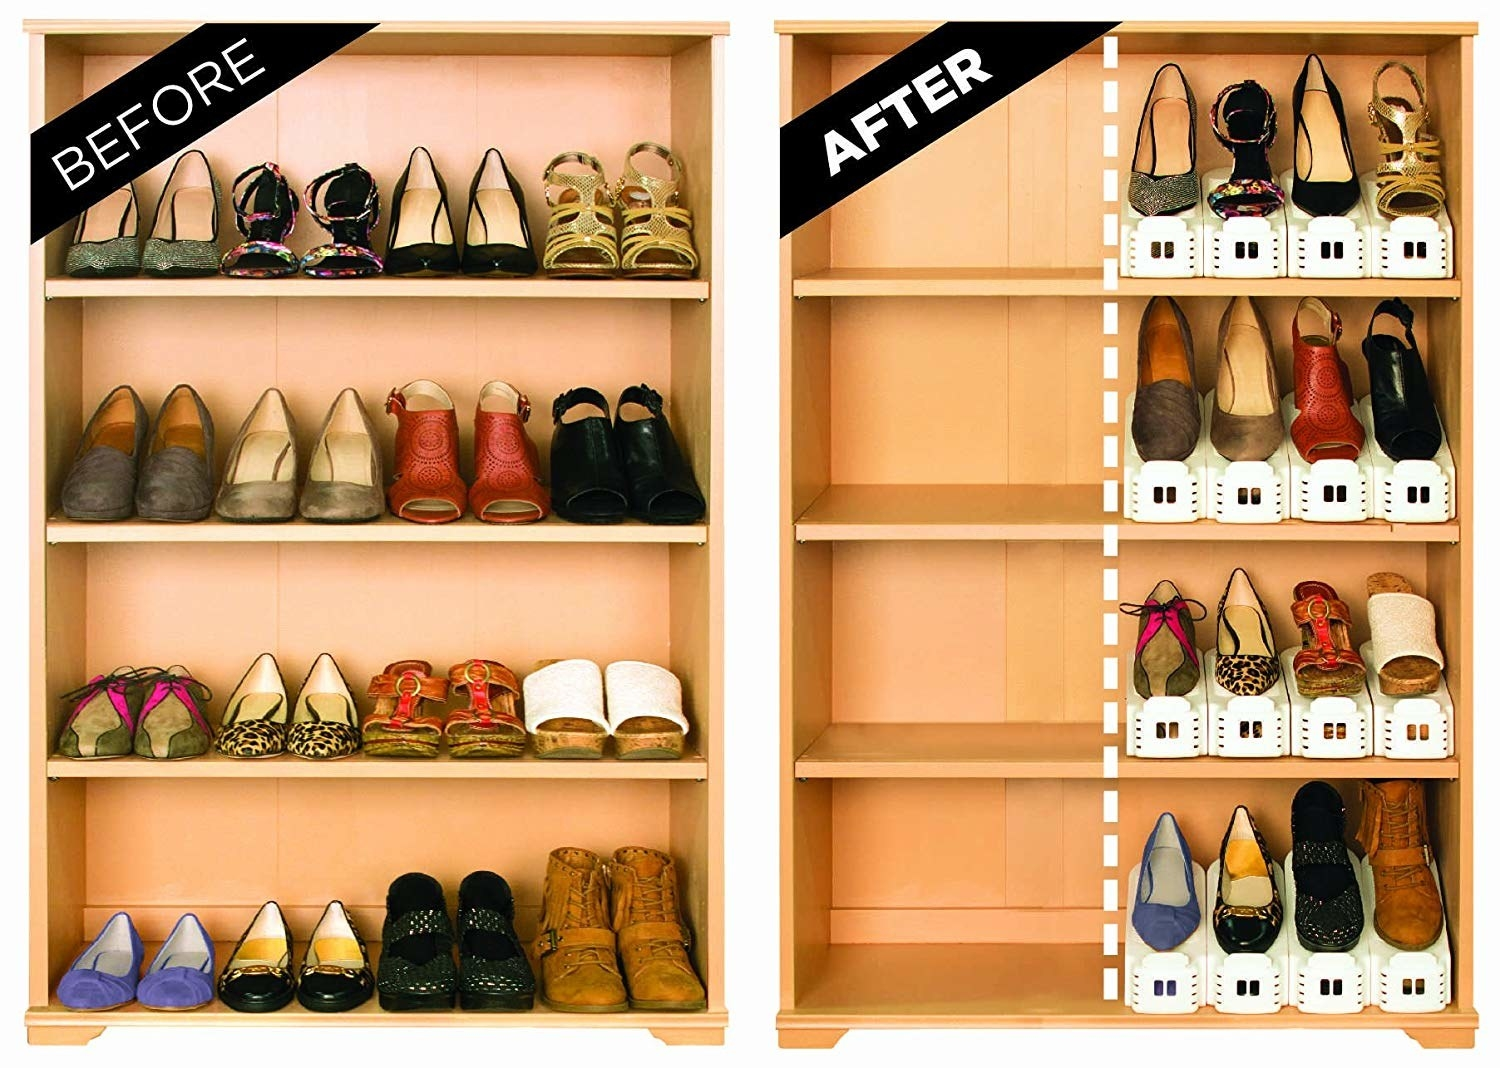 before: shelf full of pairs of shoes and after: with the white mini-shelf, pairs stack on each other to free up half the horizontal space